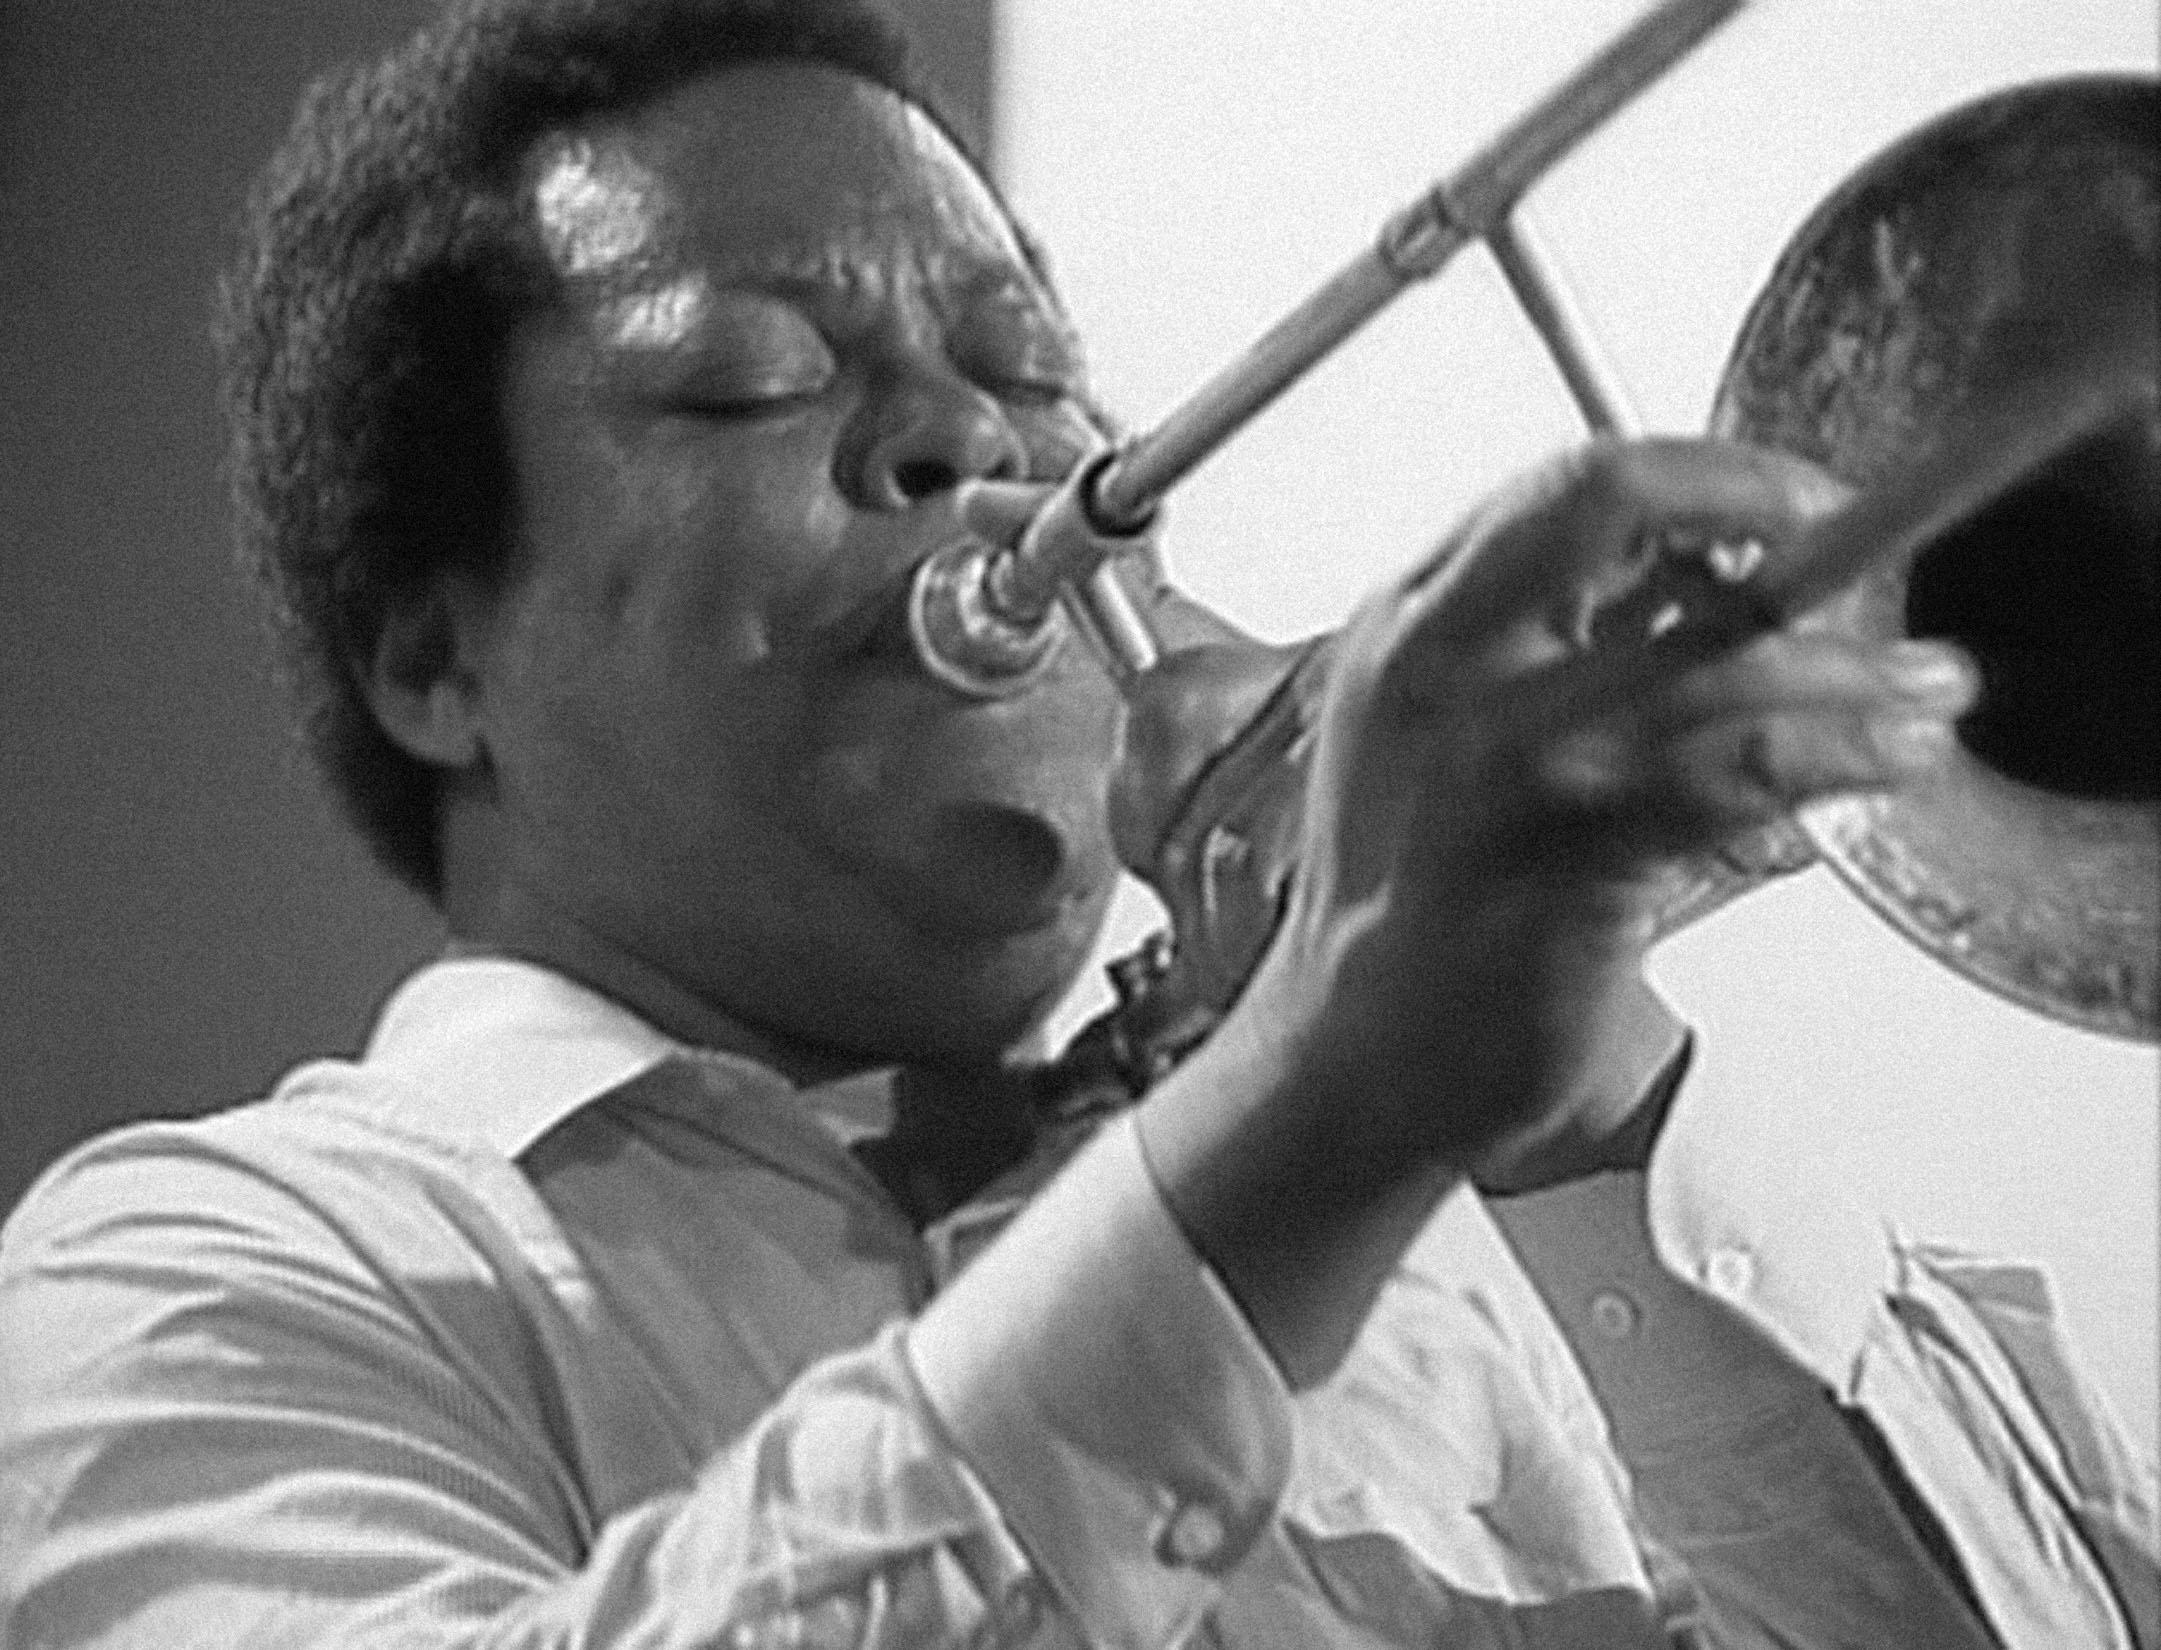 A black-and-white portrait shows a dark-skinned man with a short afro playing the trombone.